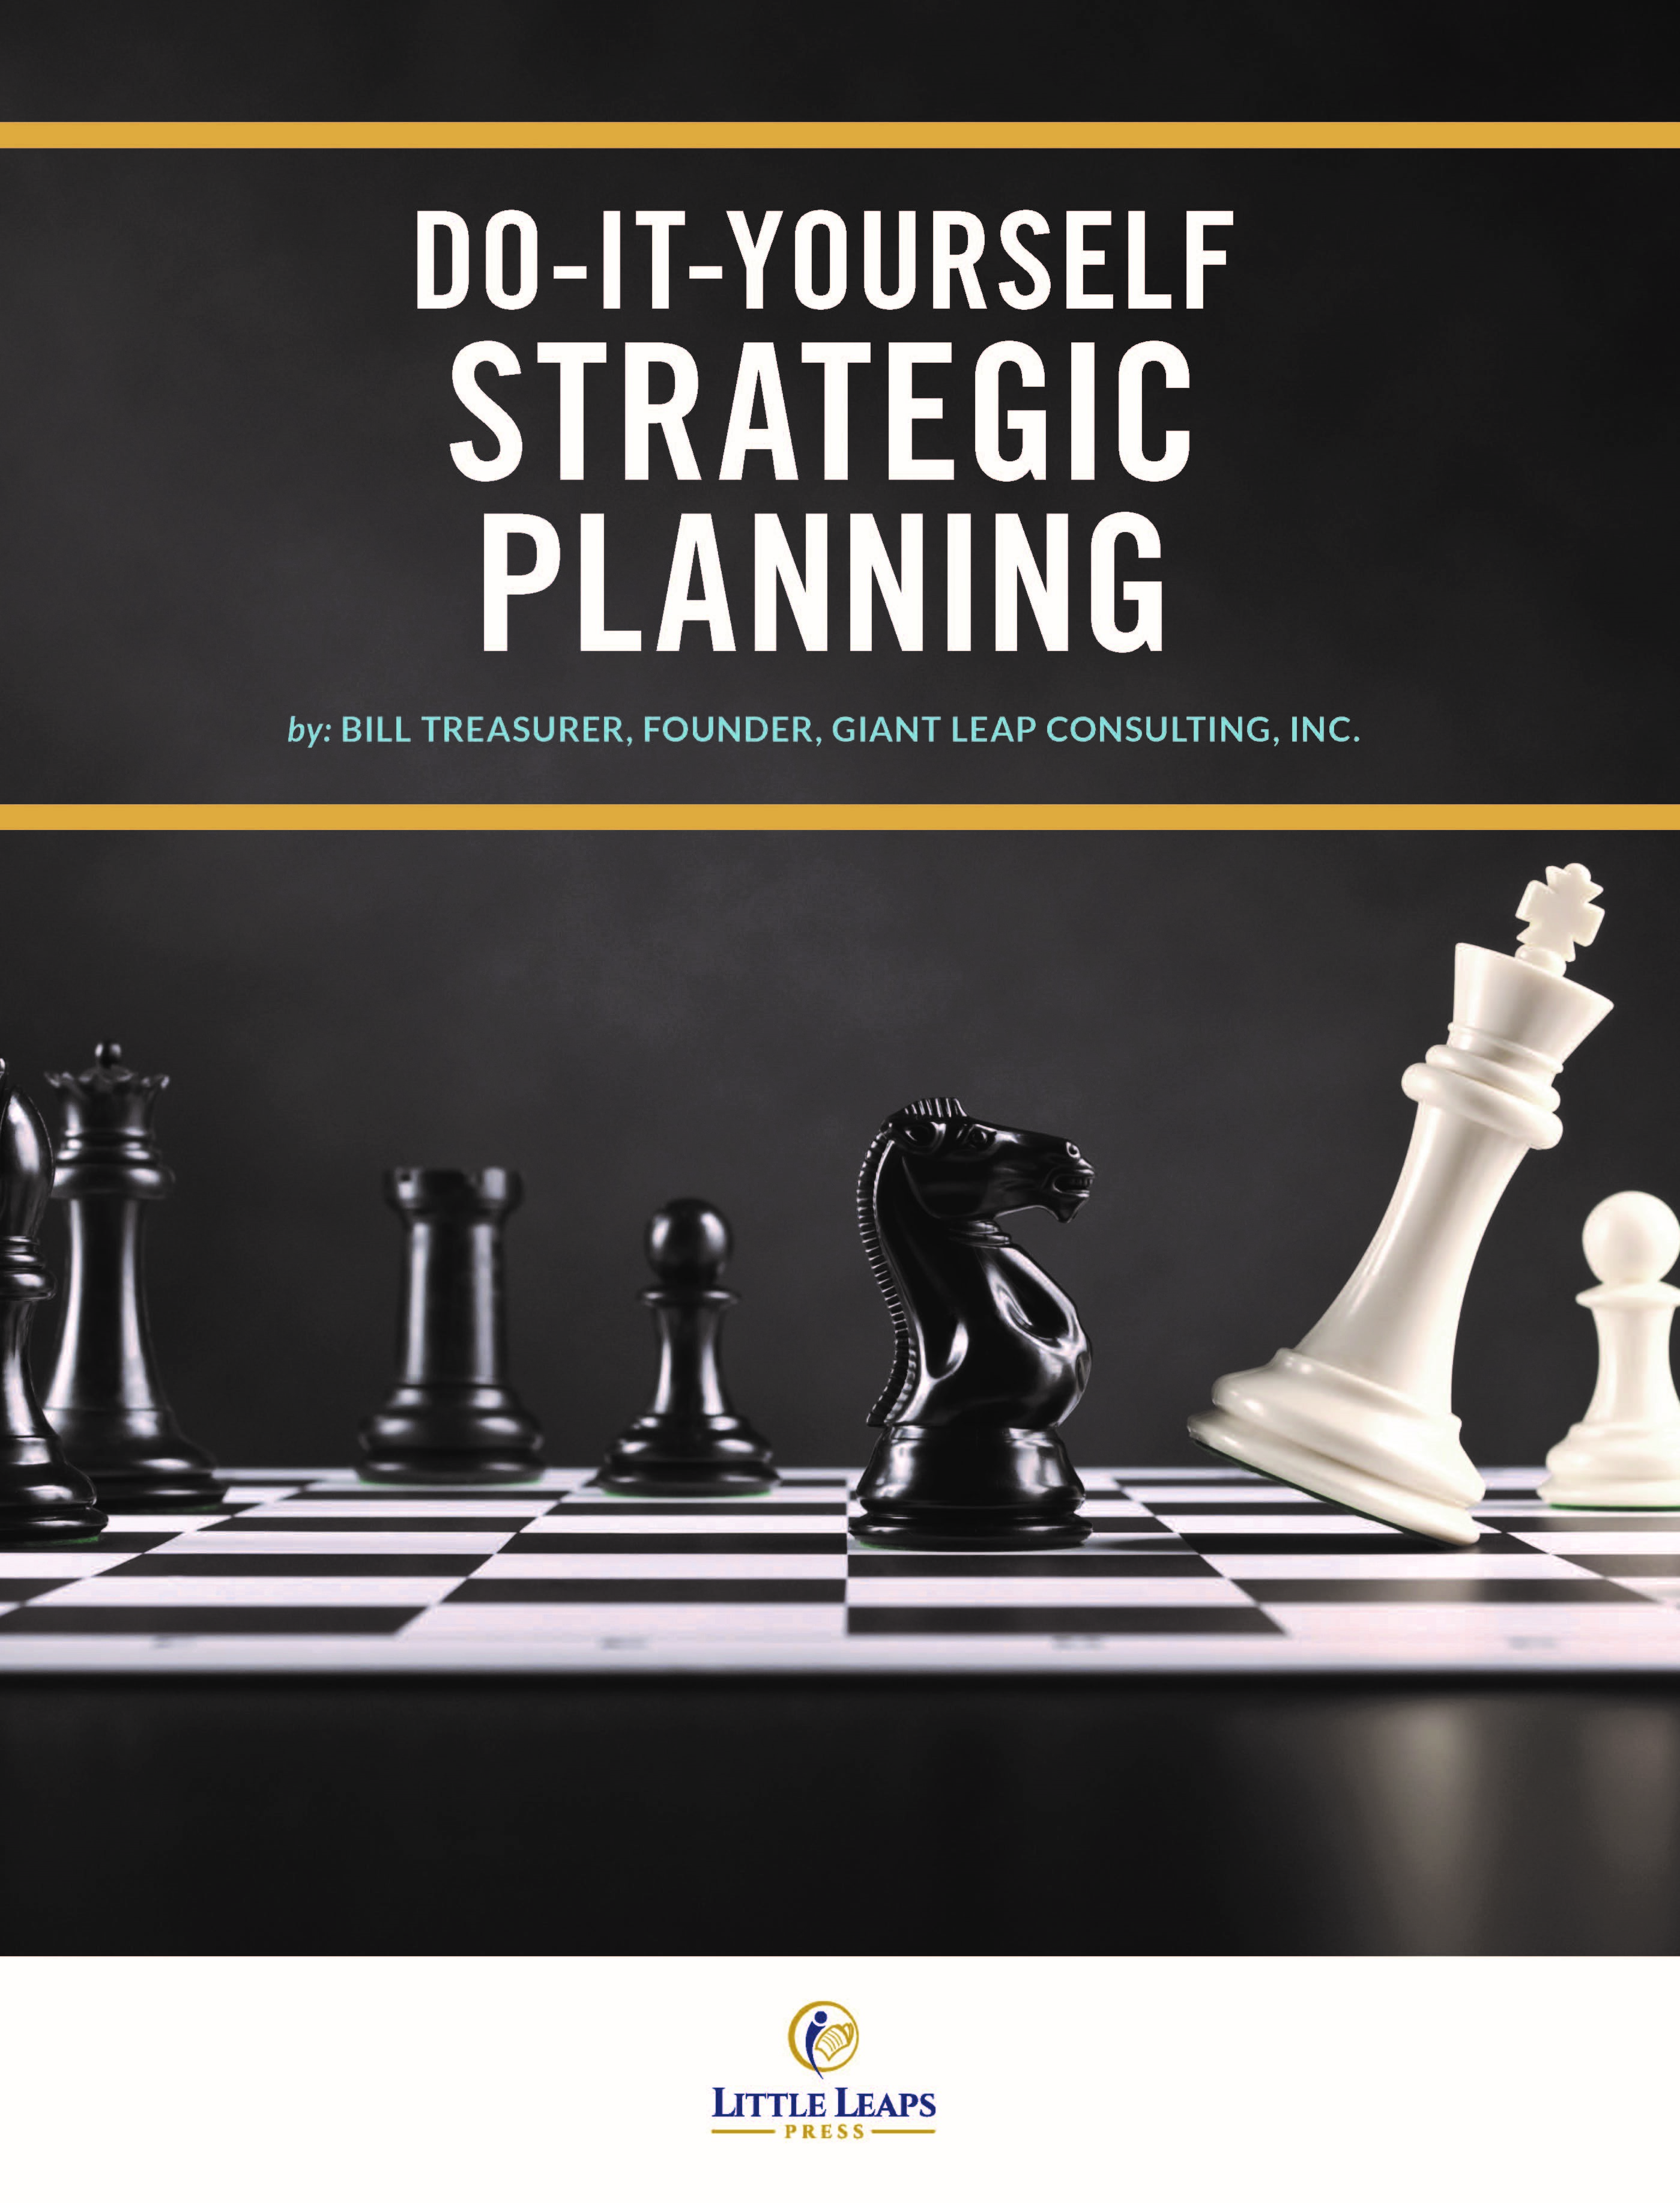 Do-It-Yourself Strategic Planning